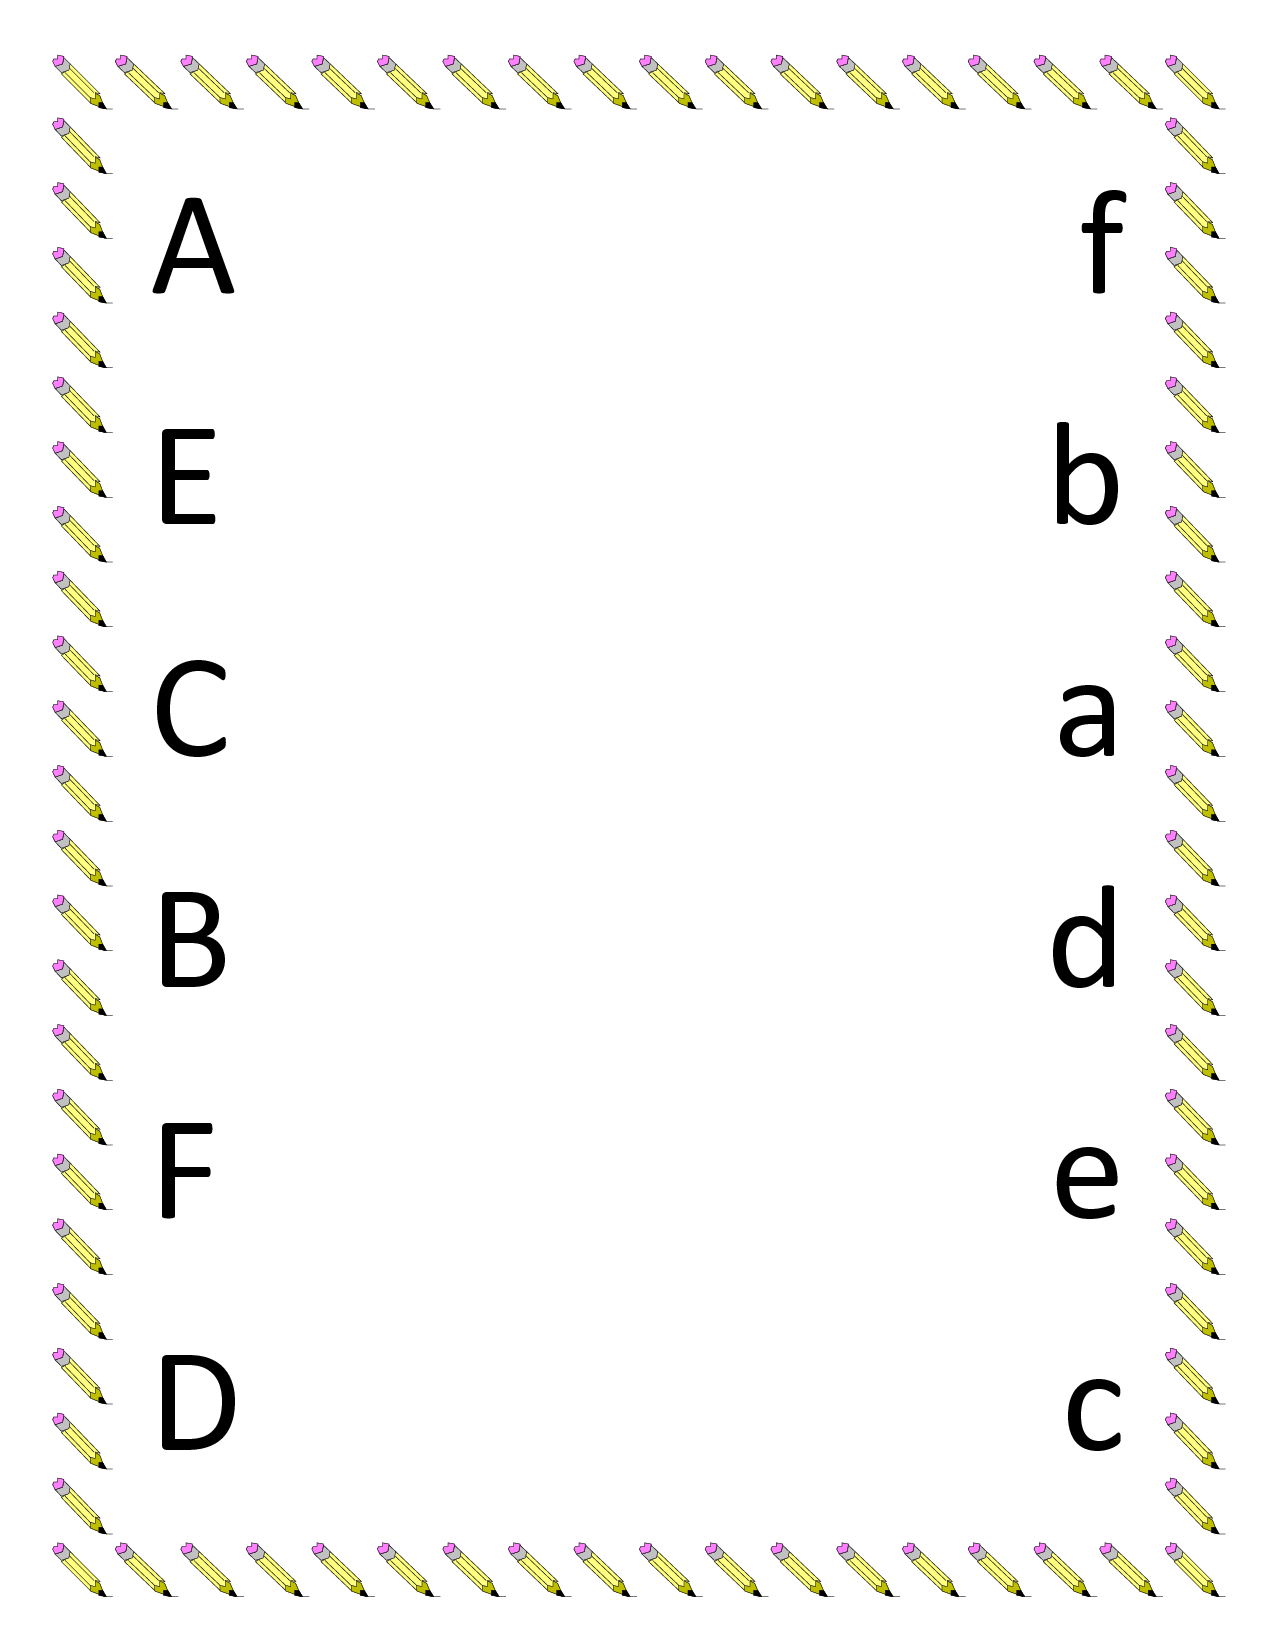 Preschool Matching Worksheets Free